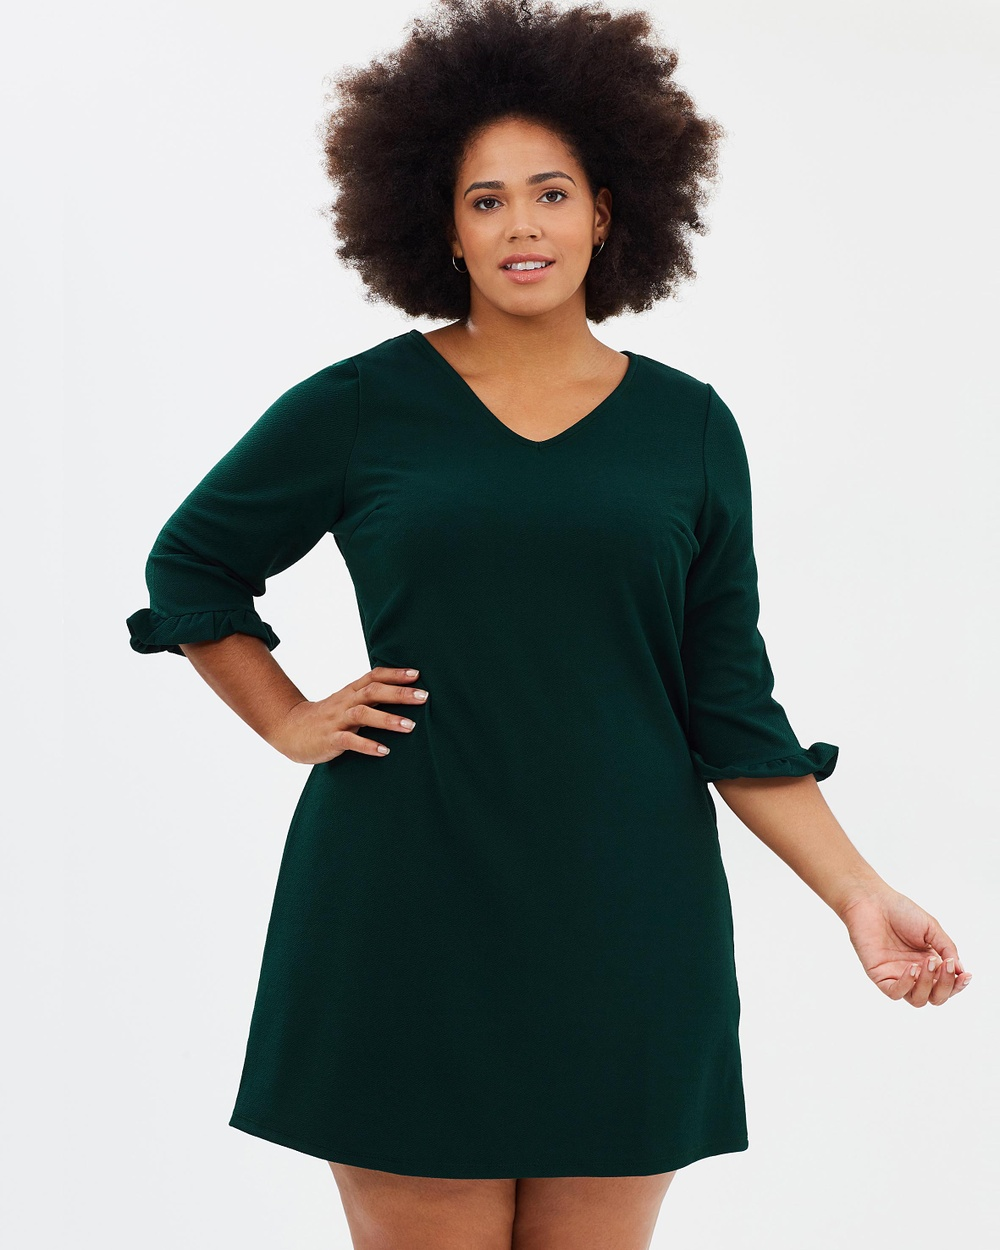 Photo of DP Curve DP Curve V Neck Frill Tunic Dresses Green V-Neck Frill Tunic - Expanding and exploring the Dorothy Perkins brand, DP Curve was launched to cater for fuller figures and women of all shapes and sizes. With an expert approach to flattering cuts and understanding the importance of quality fabrics and craftsmanship, DP Curve offers a range of classic silhouettes with a fashion-forward spin that strike the balance between timeless and of-the-moment. Ea